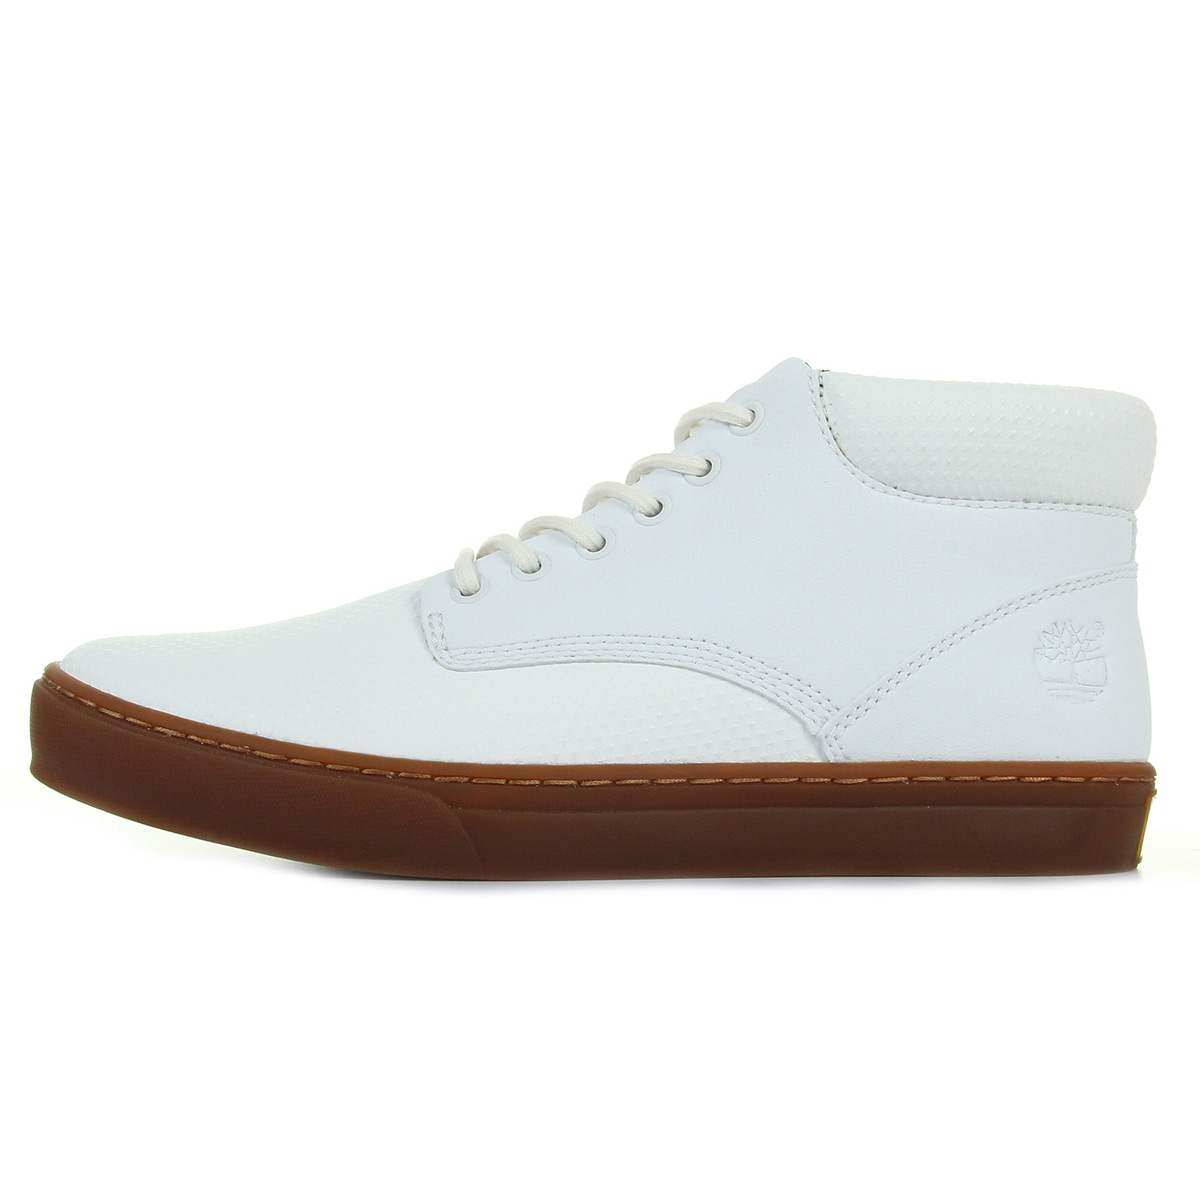 Timberland Adventure 2.0 Cupsole White CA1JSG, Boots homme